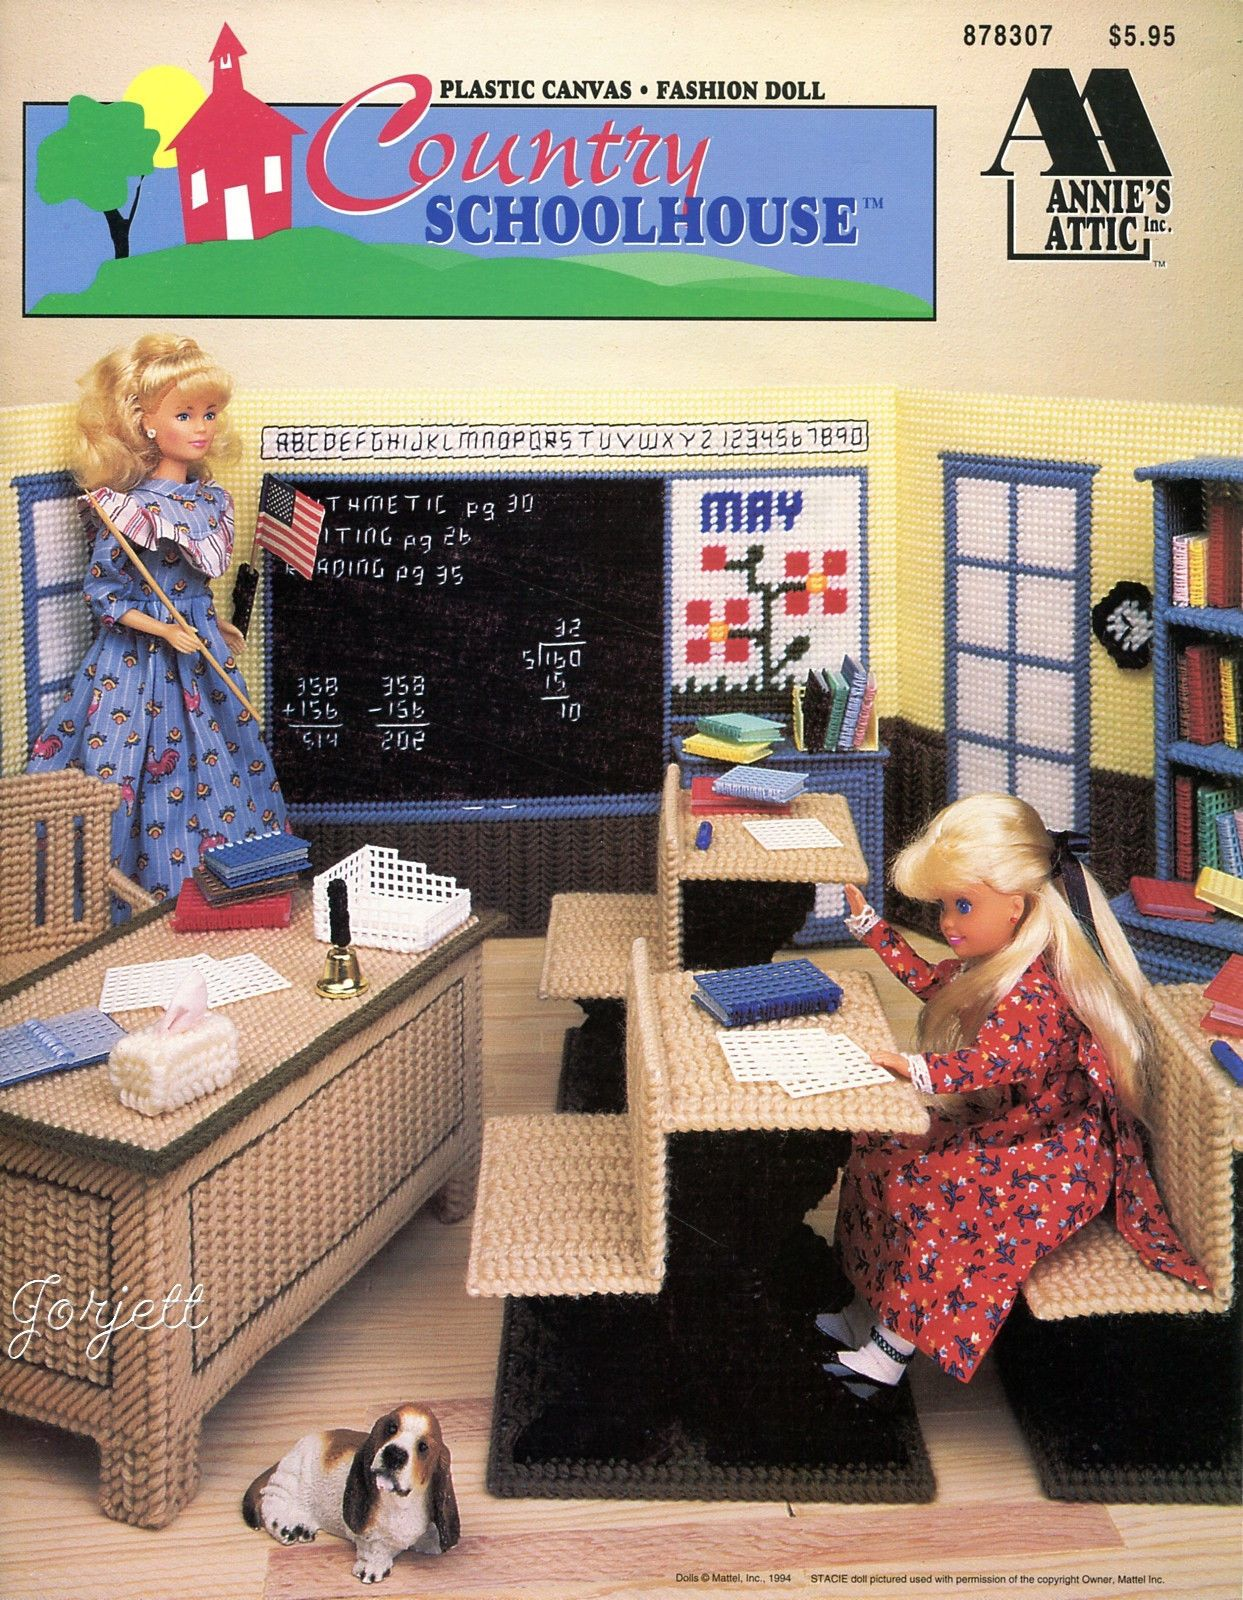 Country Schoolhouse Annies Plastic Canvas Patterns Fit Barbie Fashion Dolls In Crafts Needlecrafts Yarn Embroidery Cross Stitch Hand Embr